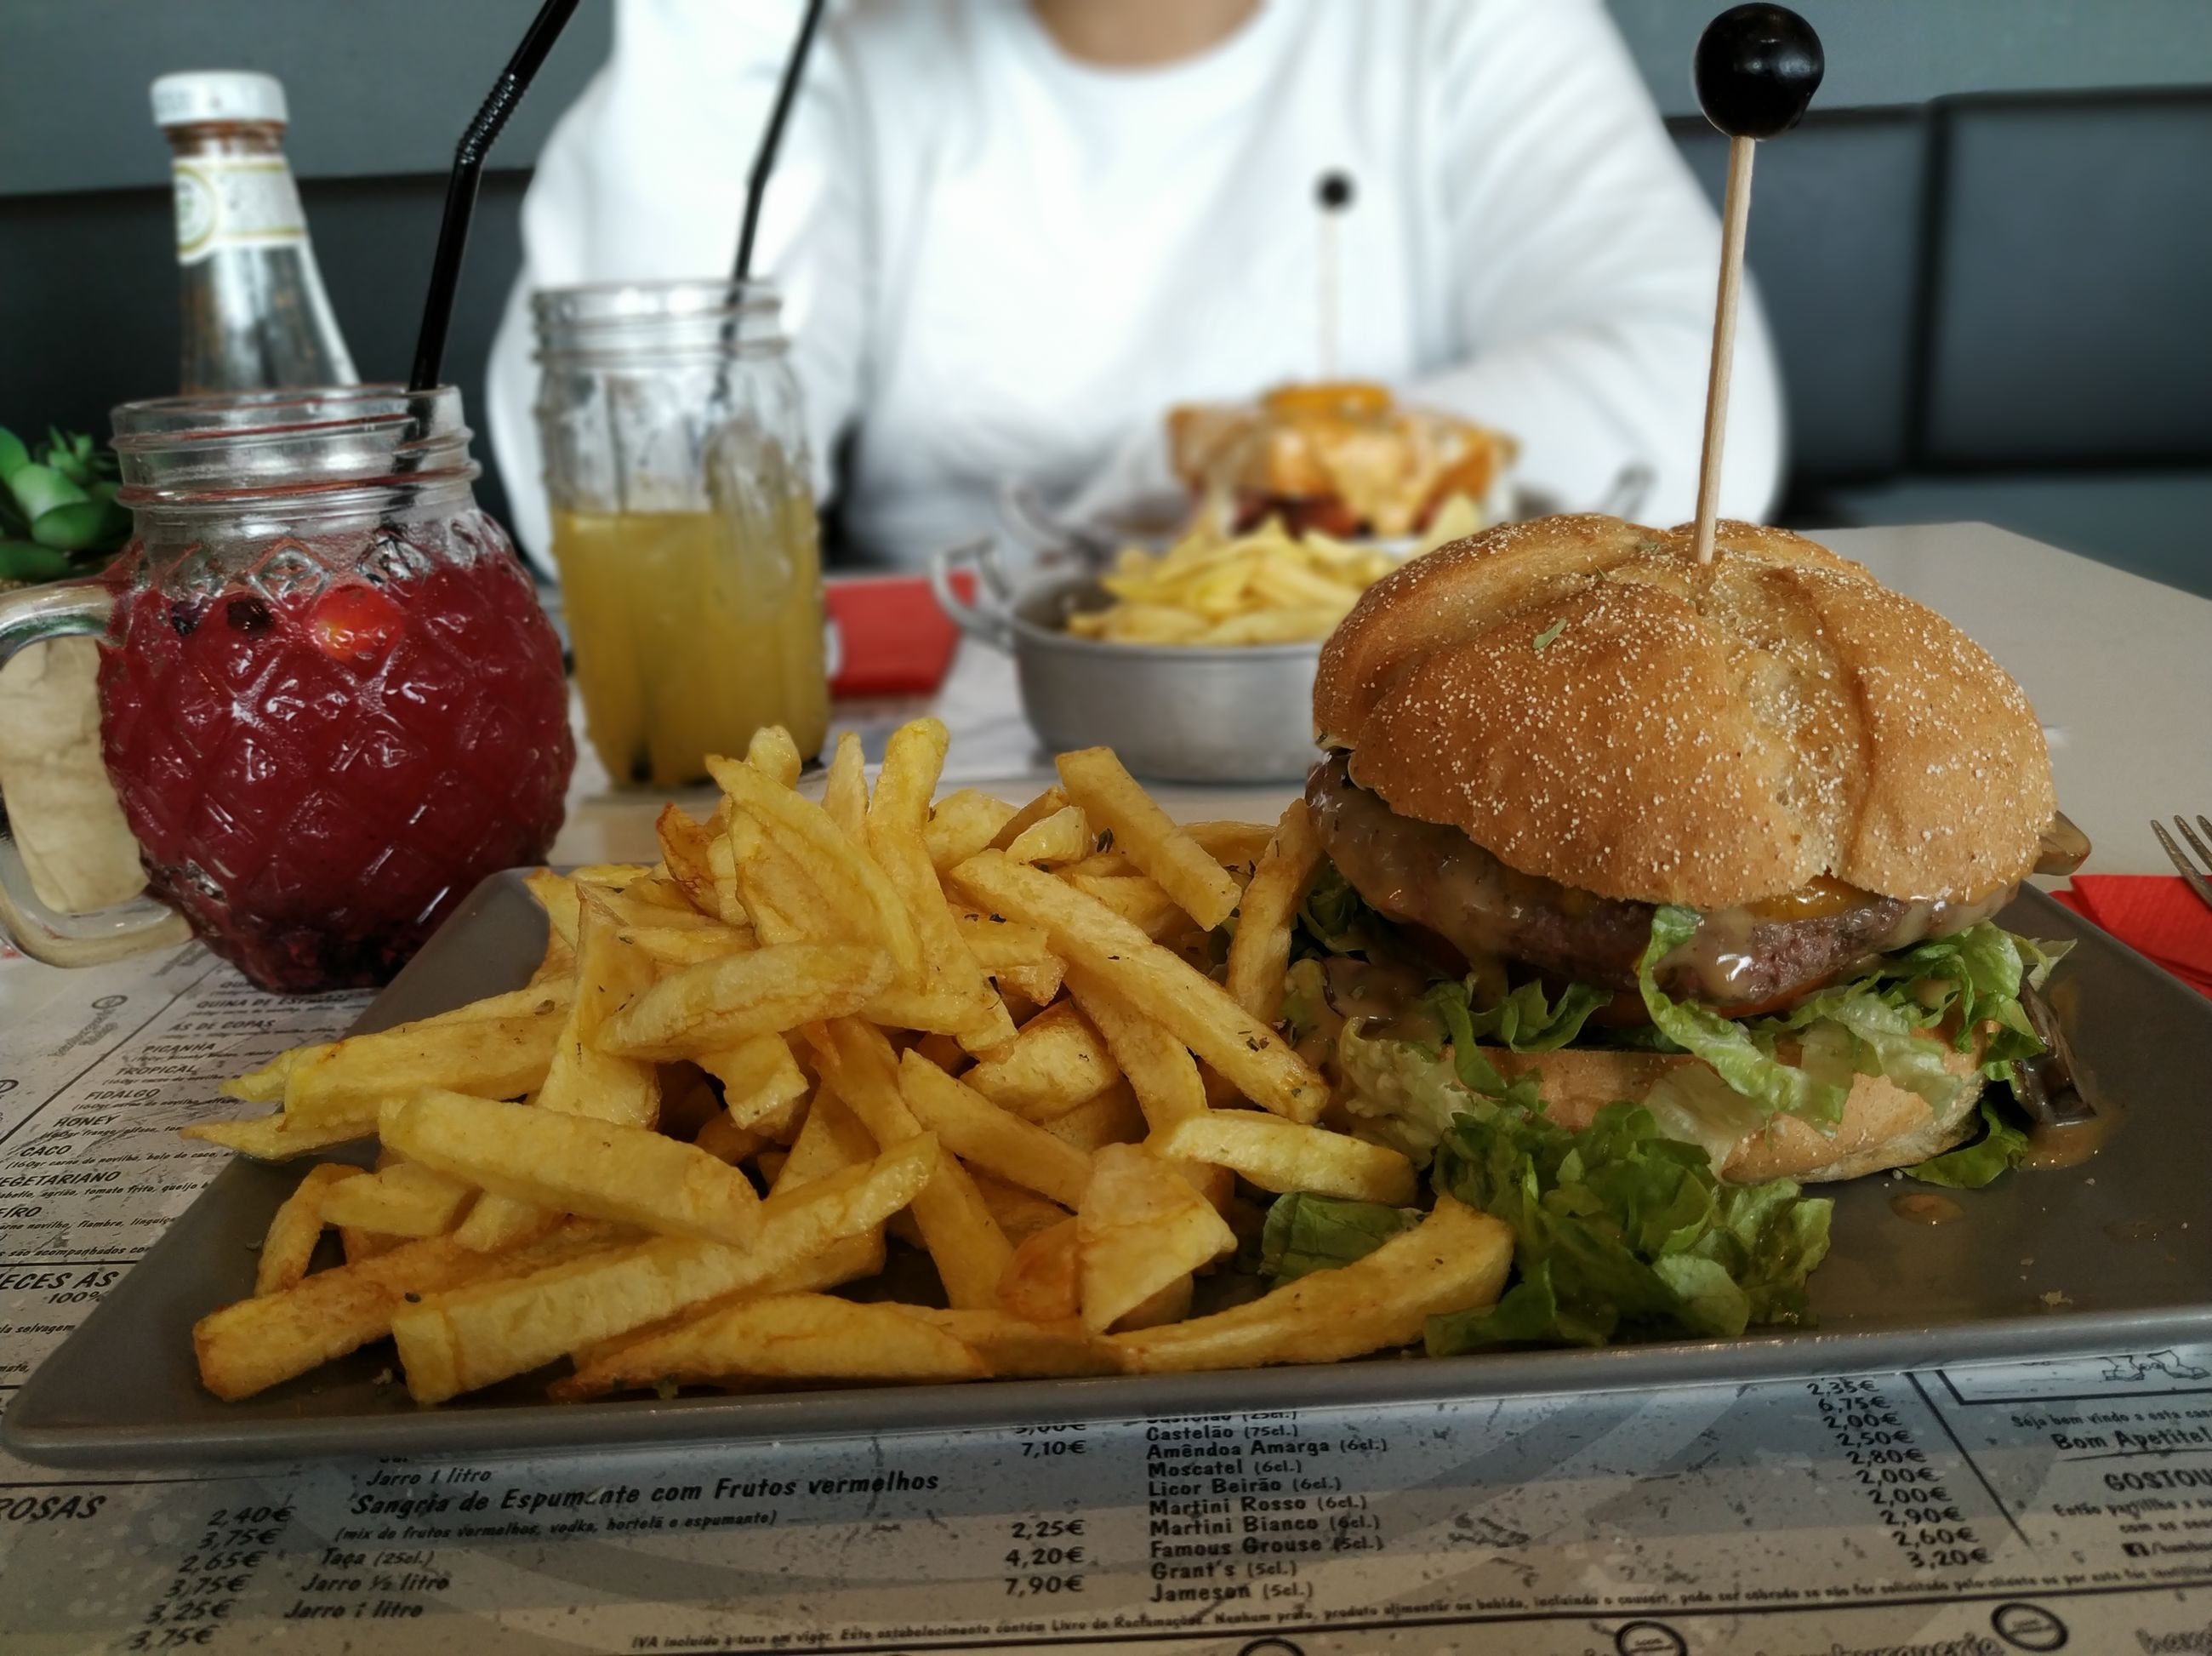 CLOSE-UP OF BURGER AND FRIES ON TABLE